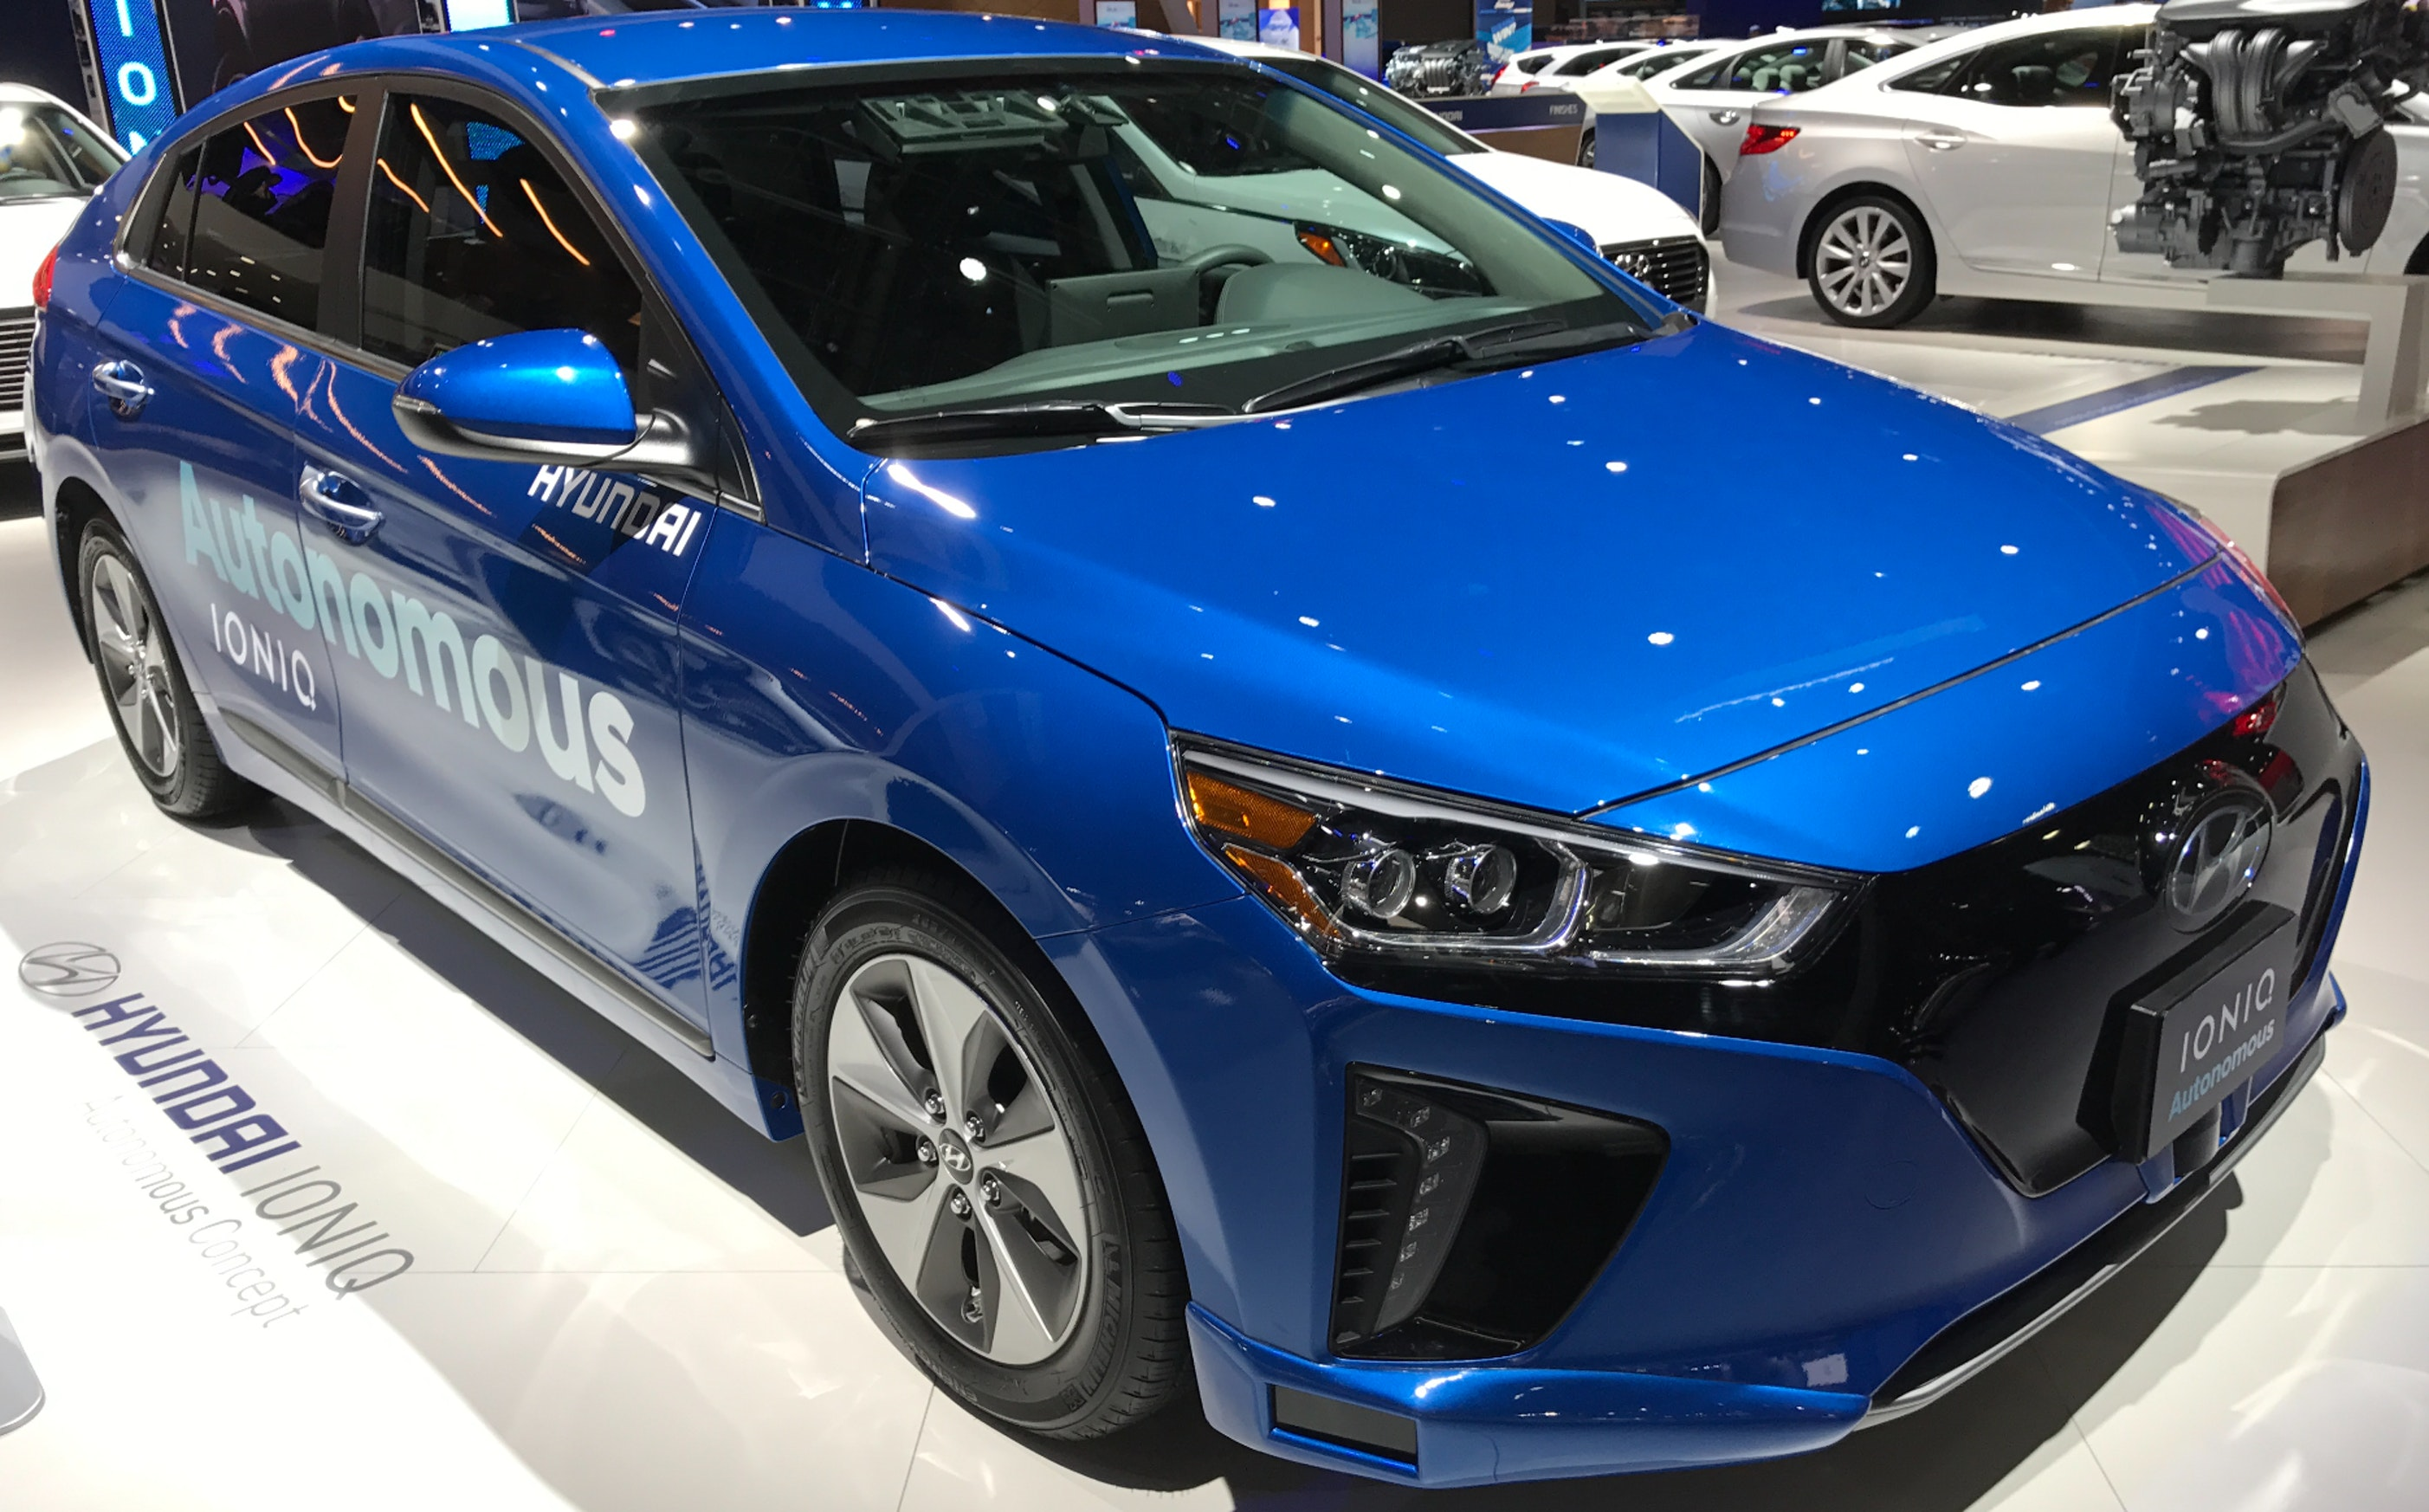 1608 This Rig Is More Than Just A Rat Rod besides Nissan Leaf 2013 as well A Tale Of 3 Battery Packs additionally 2016 Tesla Model X P90d Review likewise New Nissan Altima Inventory For Sale Irvine. on nissan leaf seats